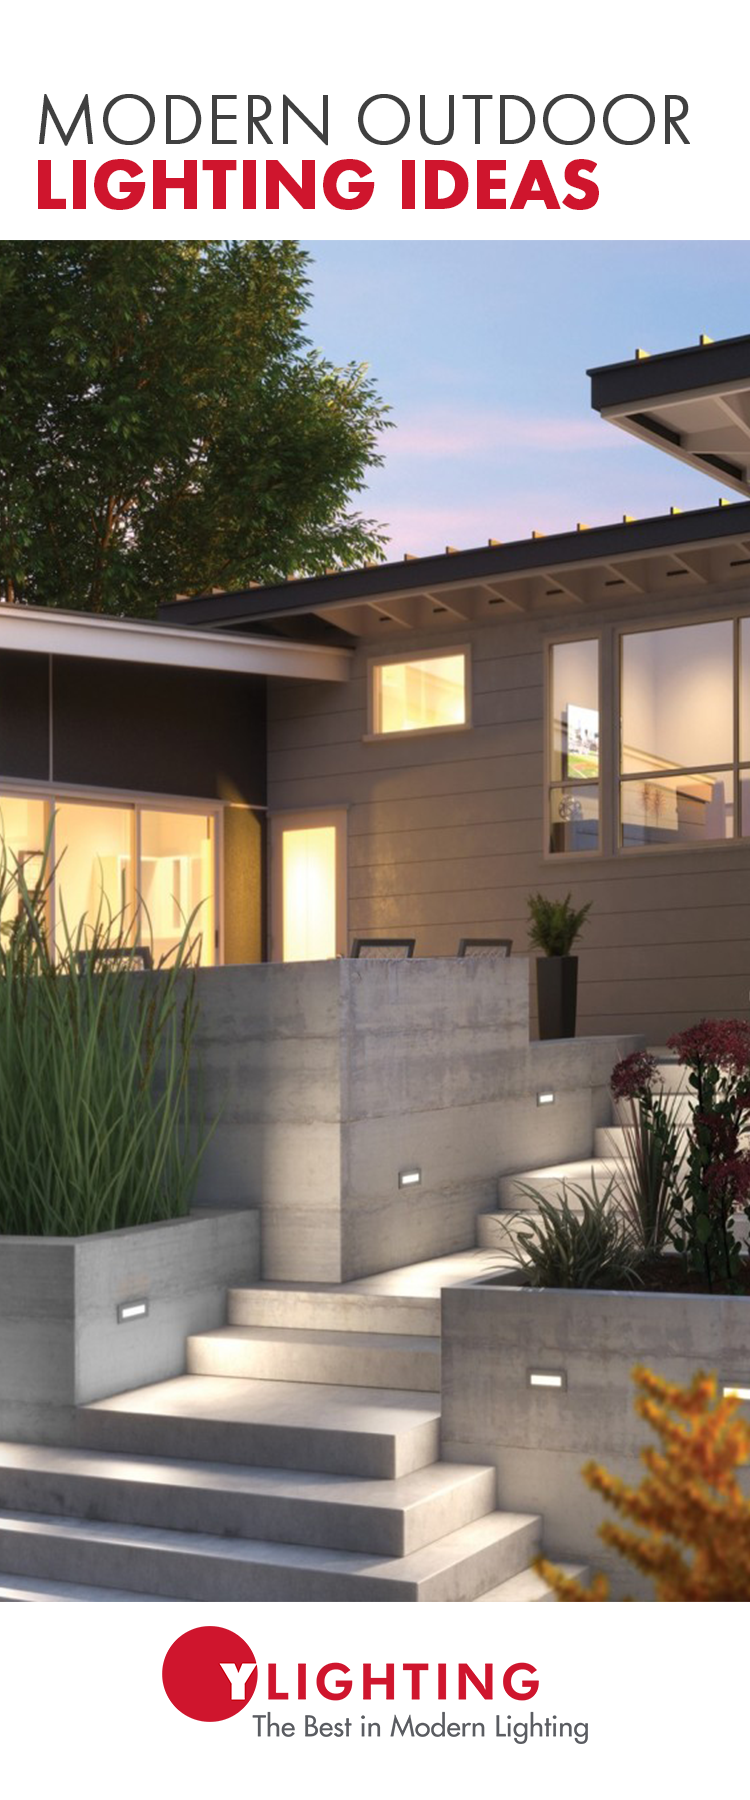 Outdoor Lighting Is An Essential Element In Home Design These